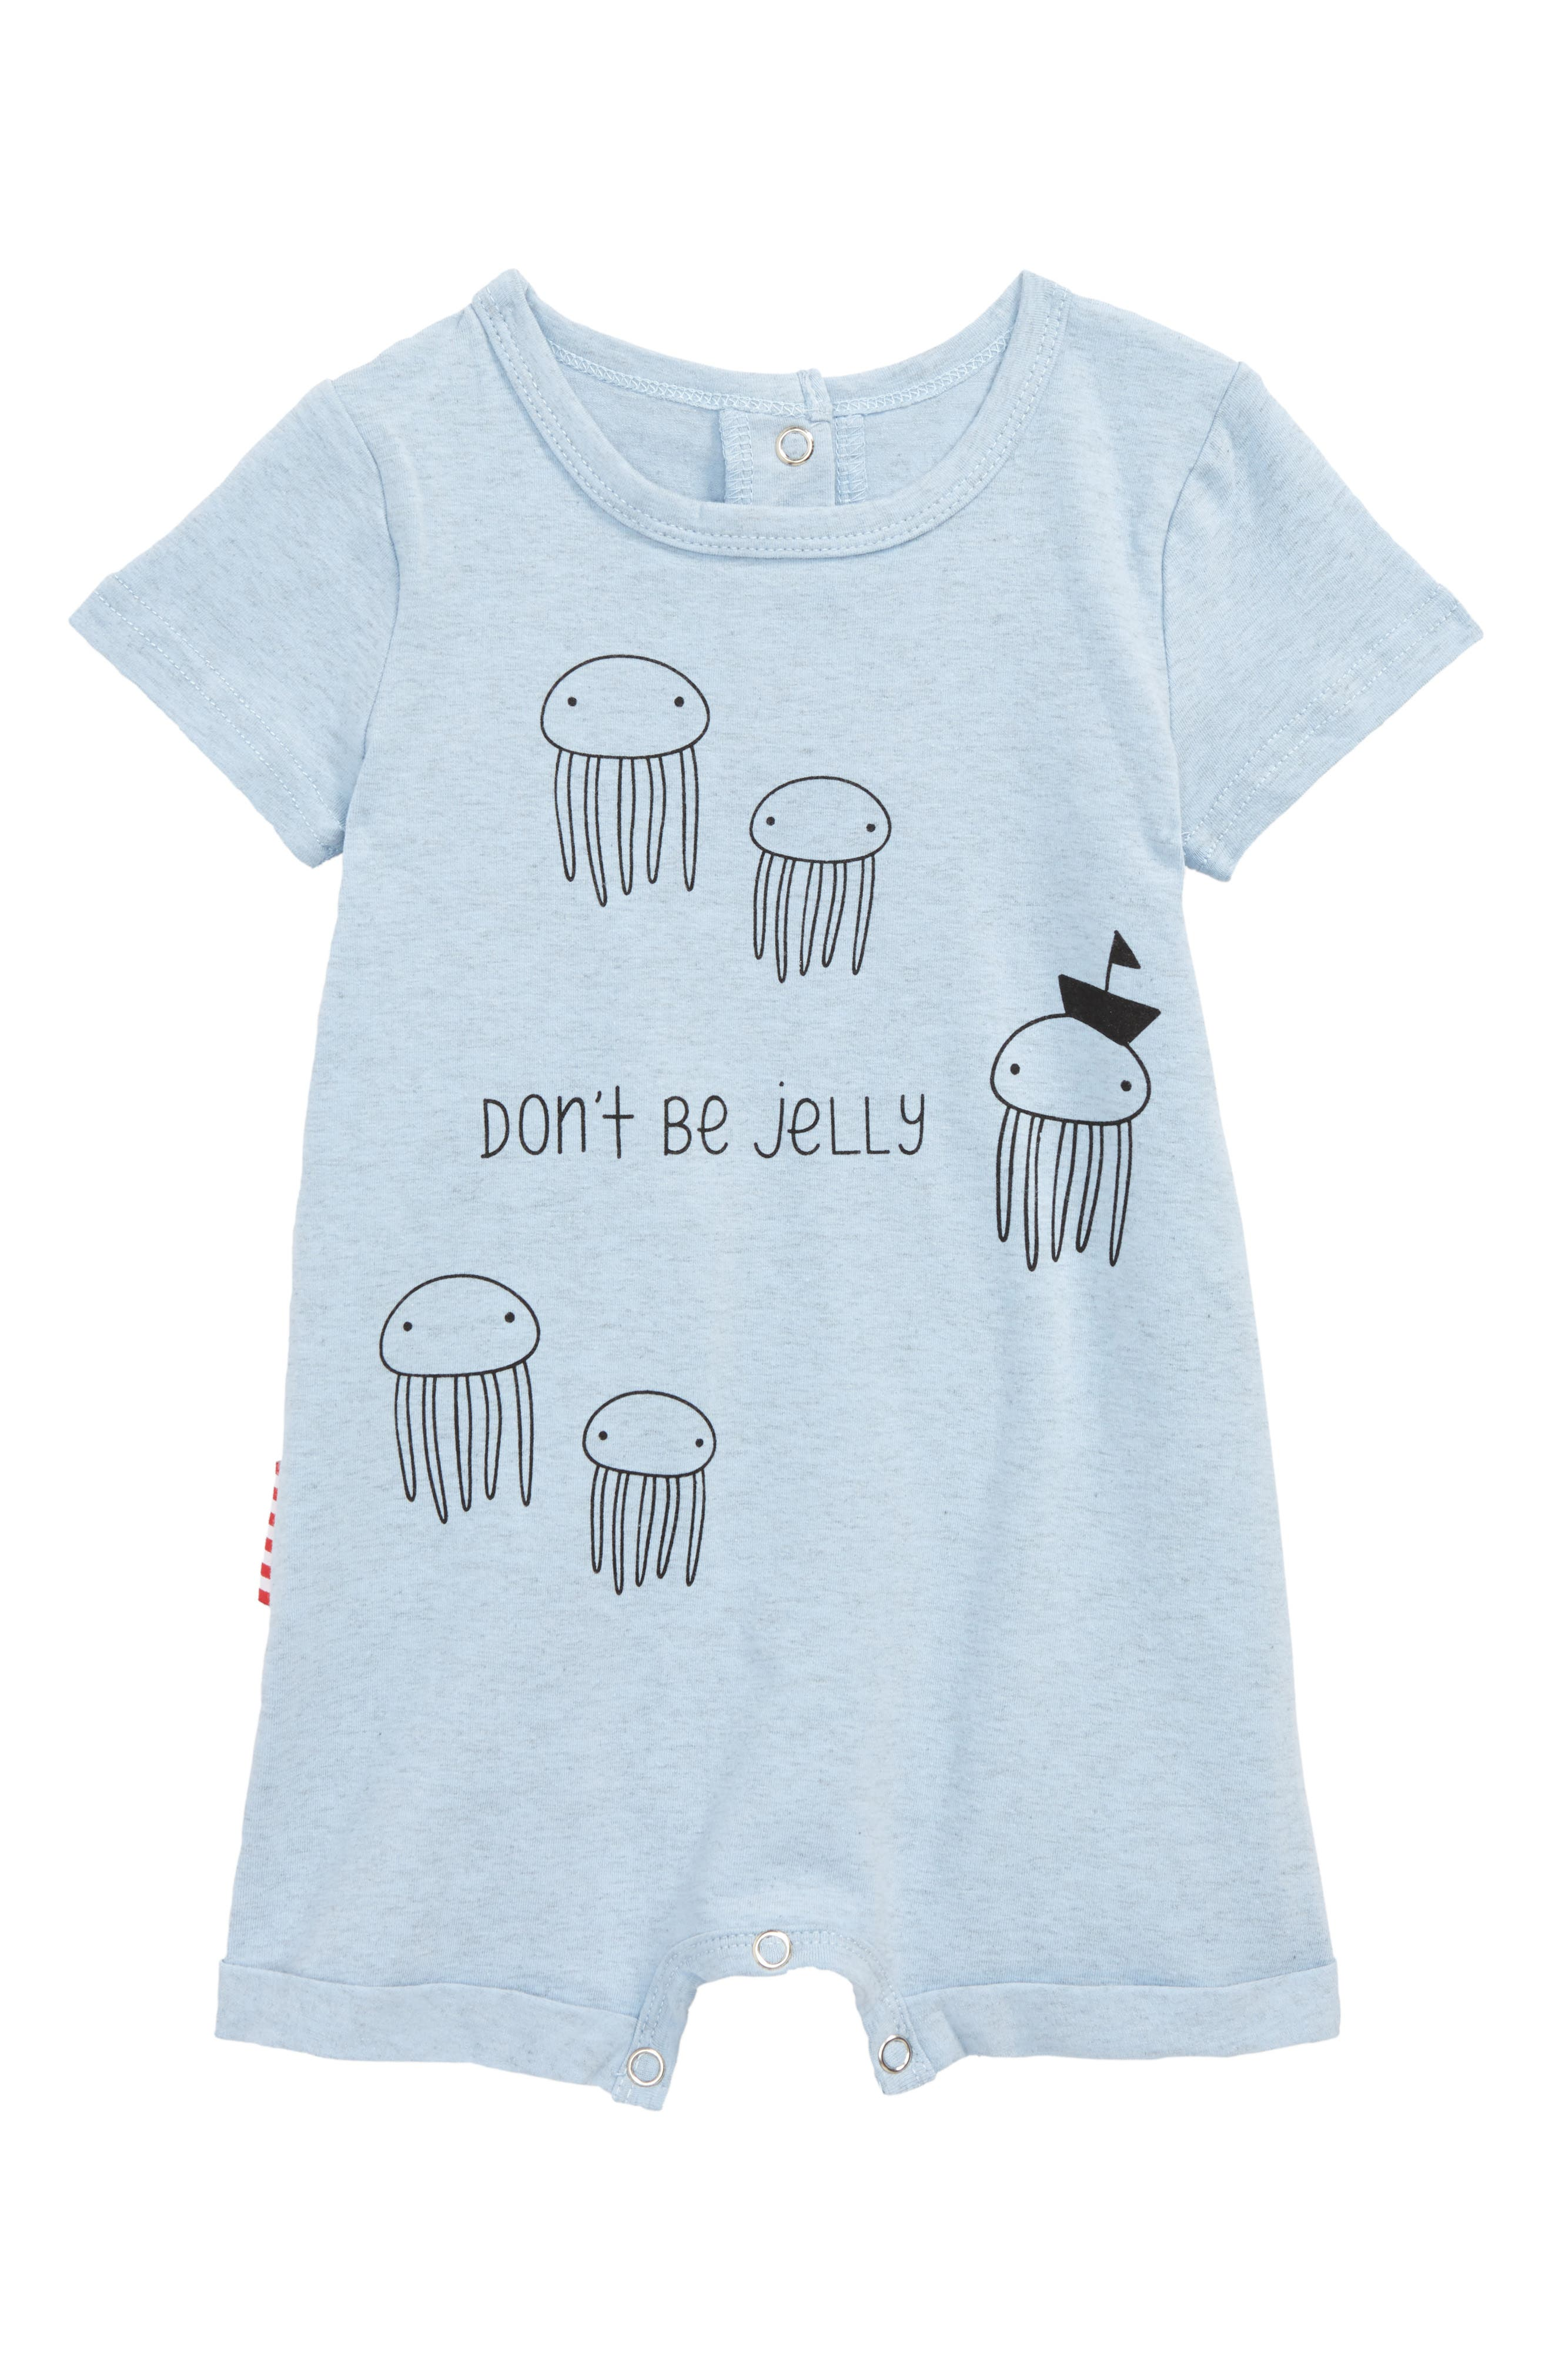 Don't Be Jelly Romper,                             Main thumbnail 1, color,                             Blue Marl